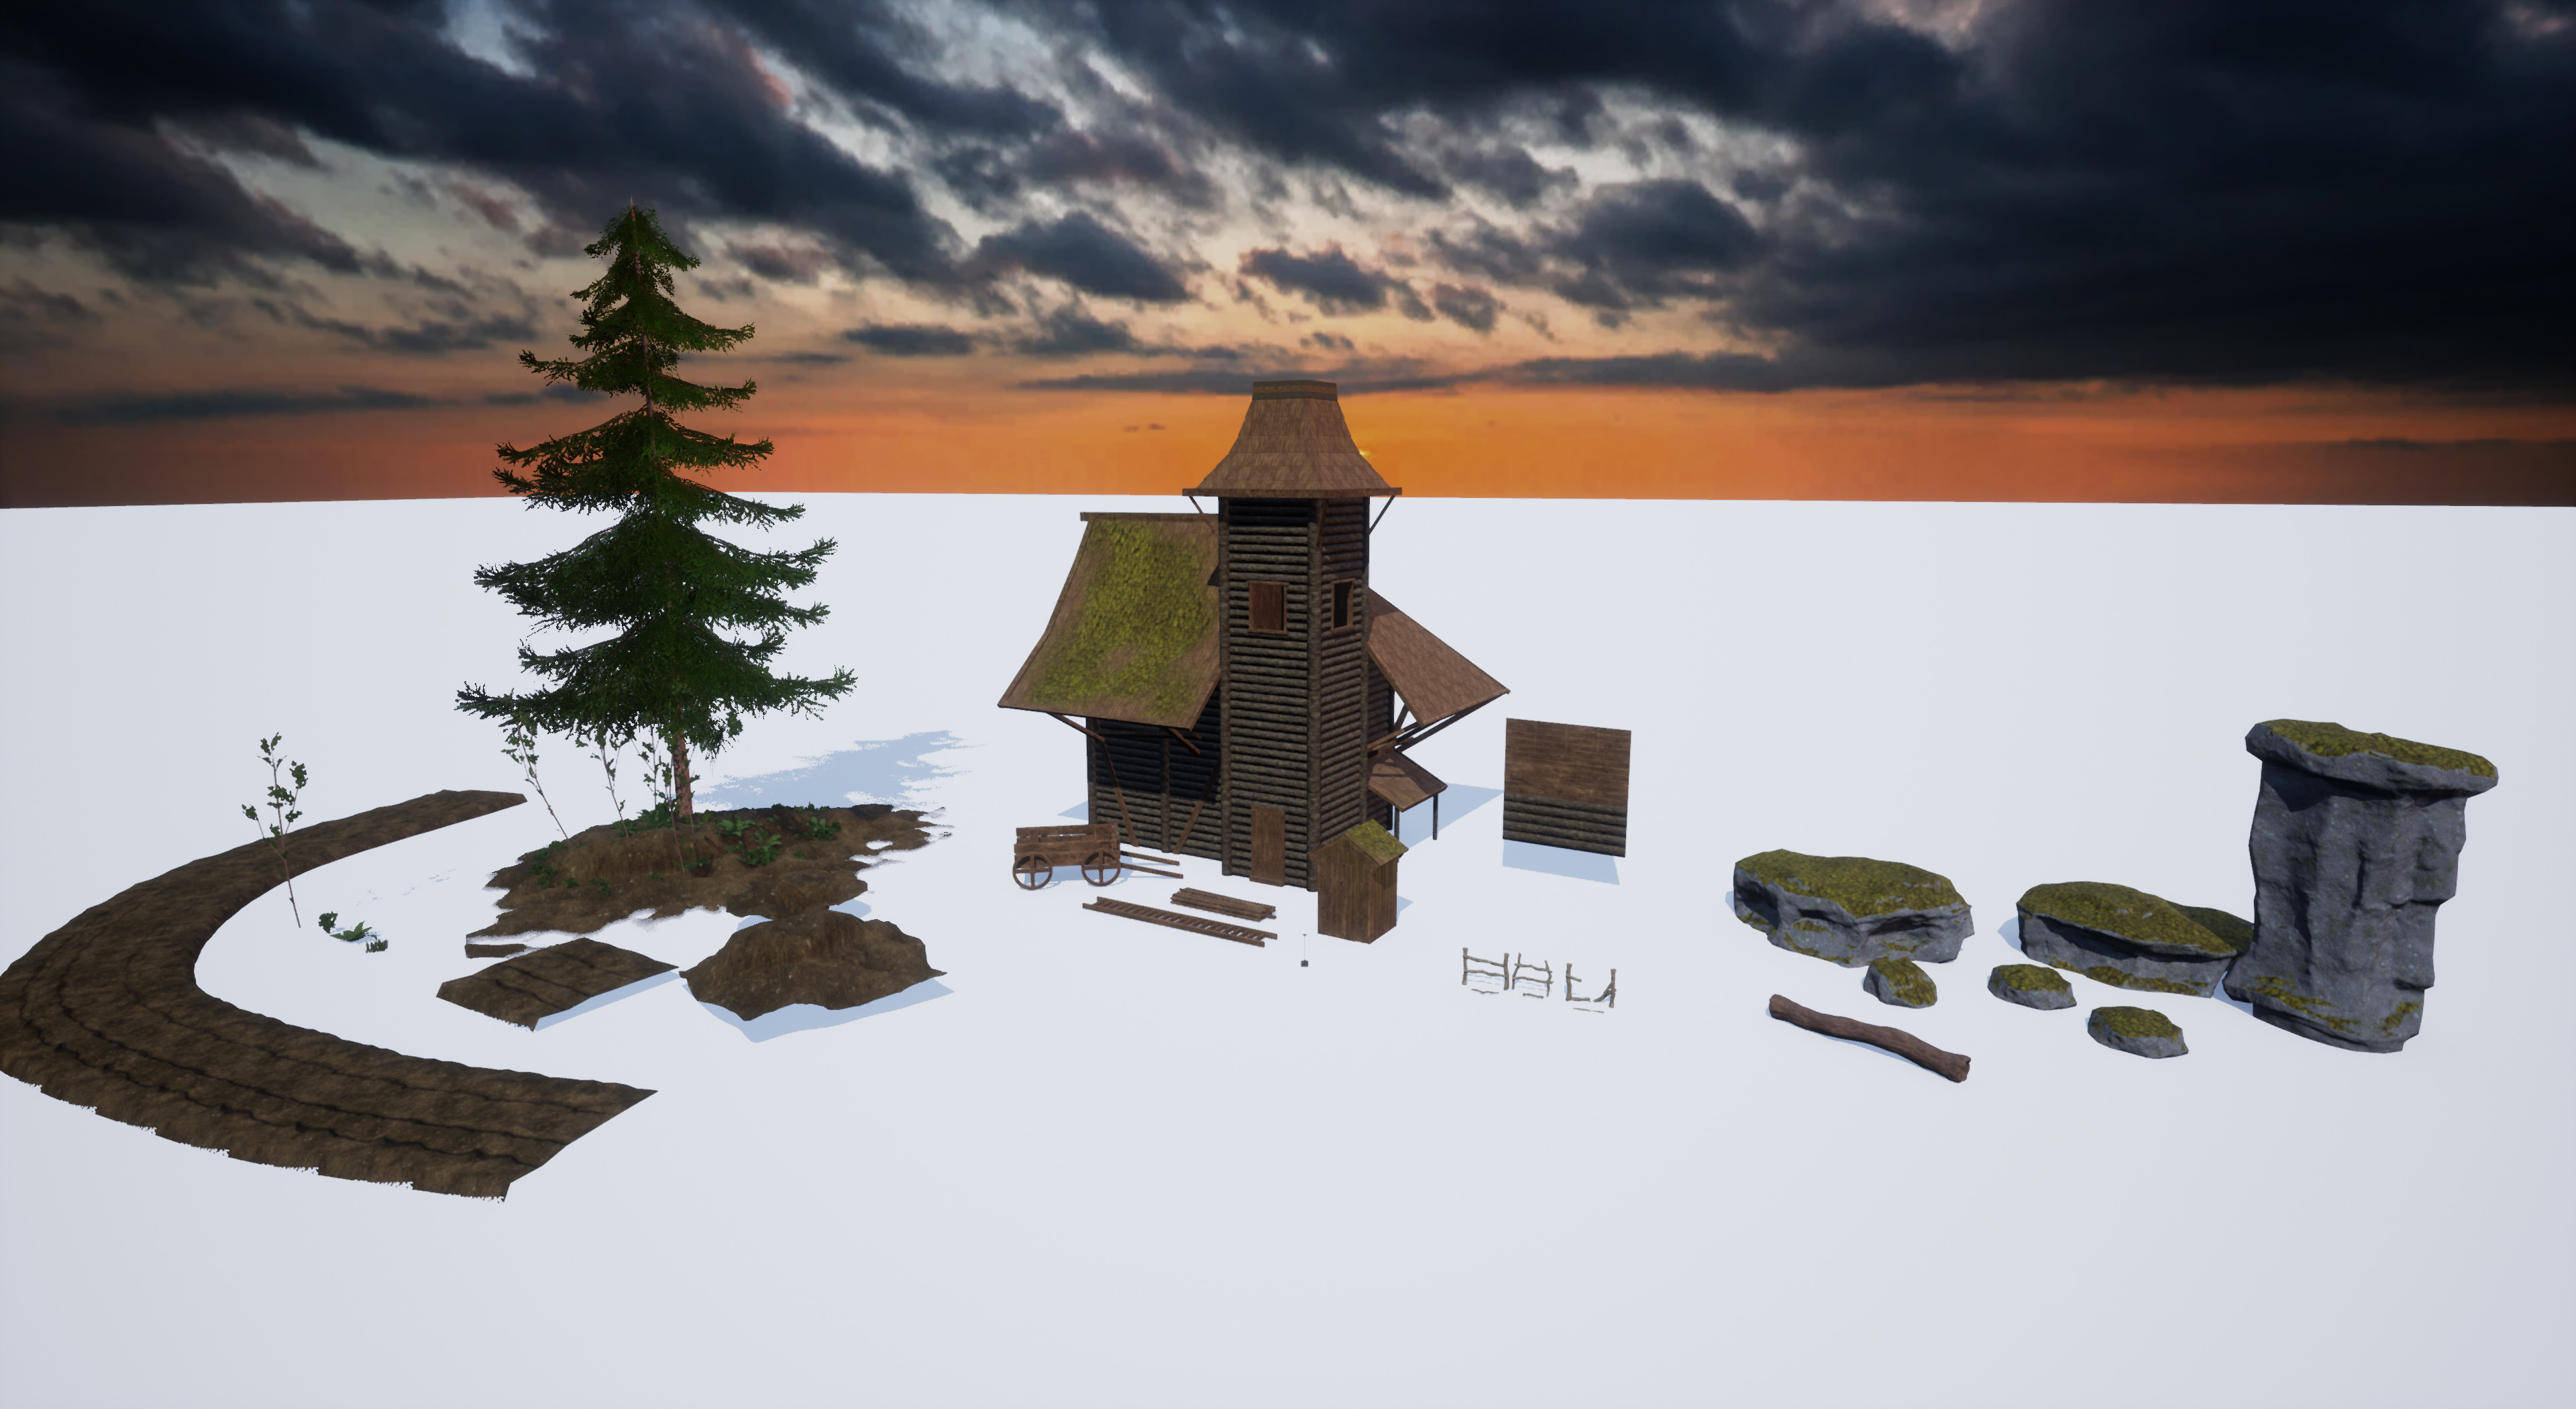 The full collection of assets used in the scene, not counting the textures.